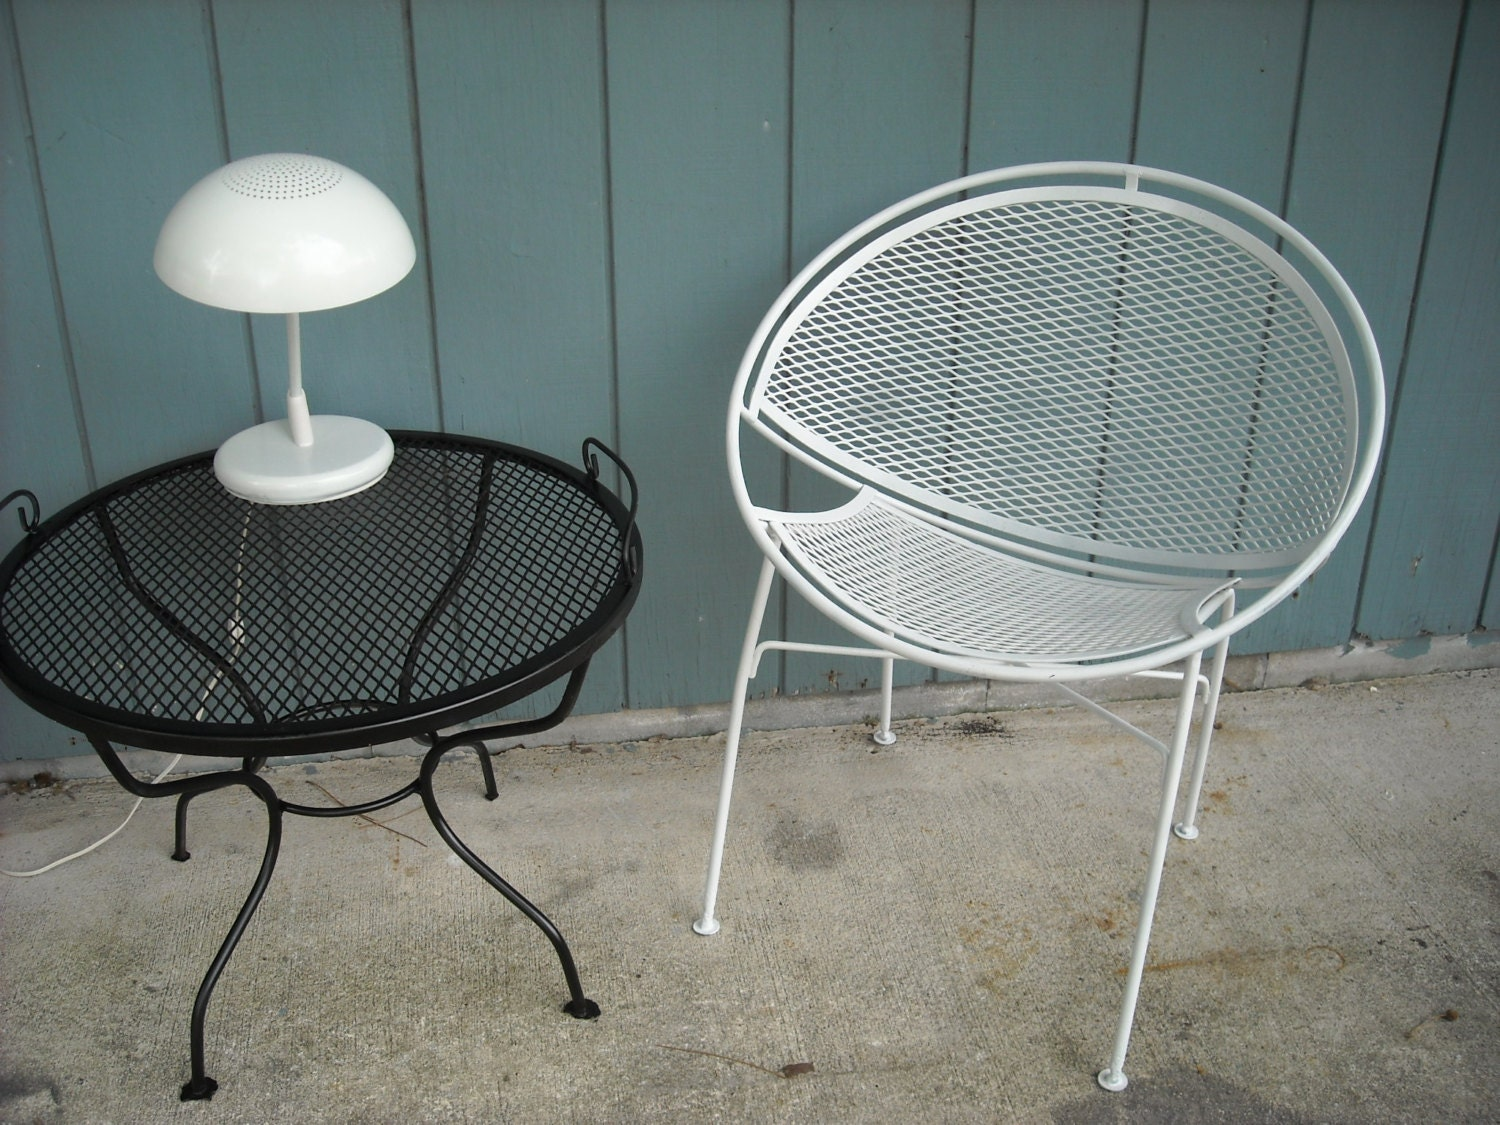 Salterini White Mesh Orb Patio Chair Iron Clam by ZeeJunkHunter